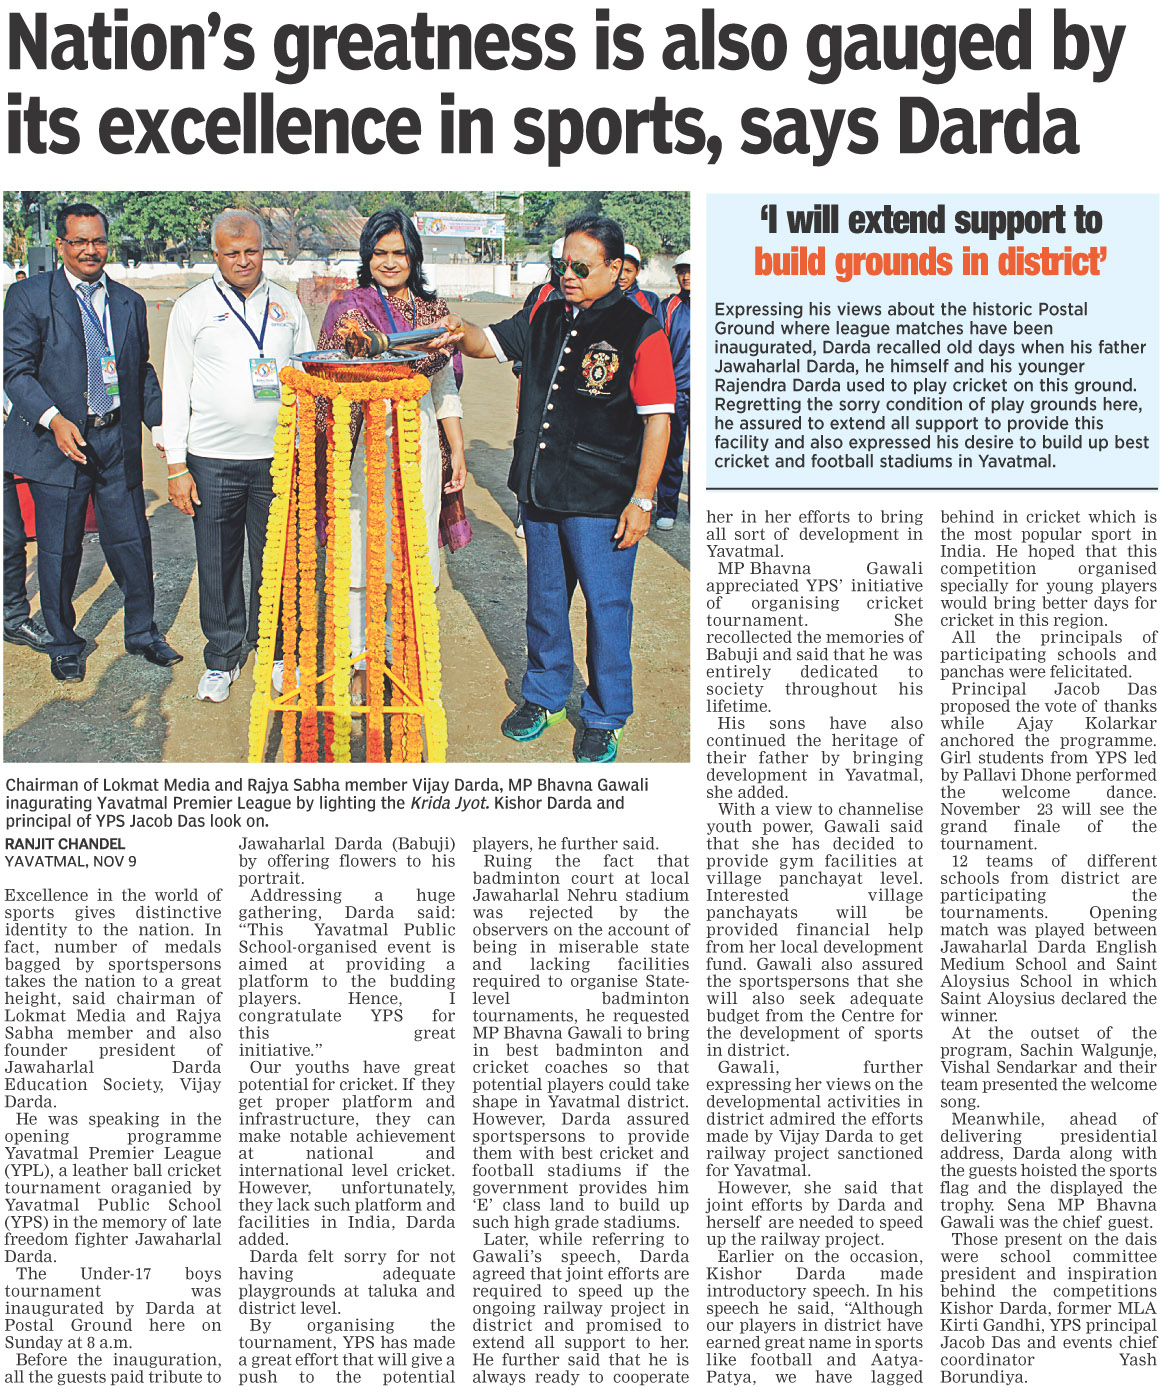 Nation's greatness is also gauged by its excellence in sports, says Darda